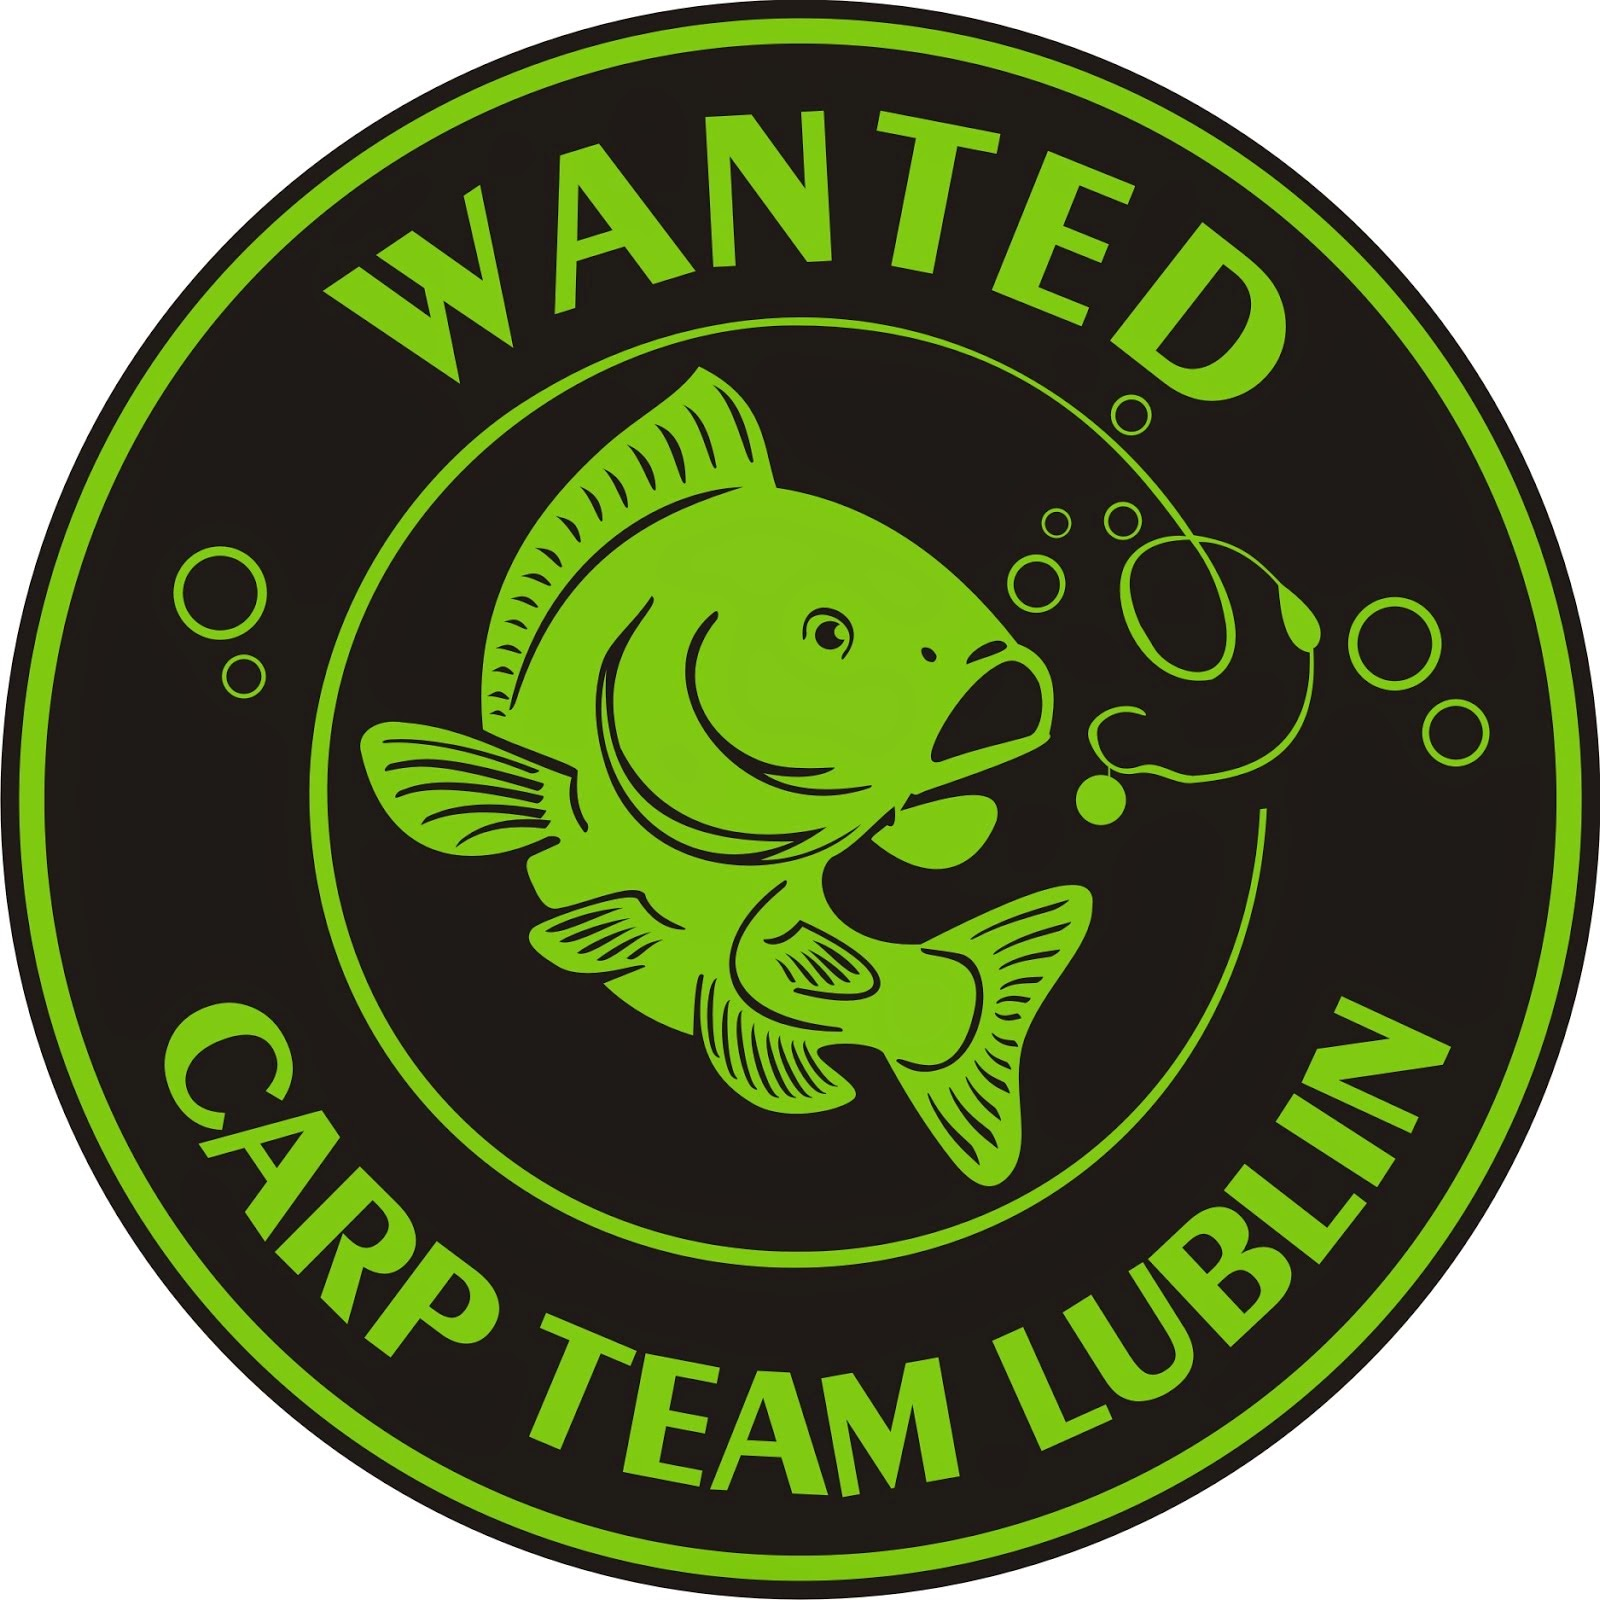 Wanted Carp Team Lublin